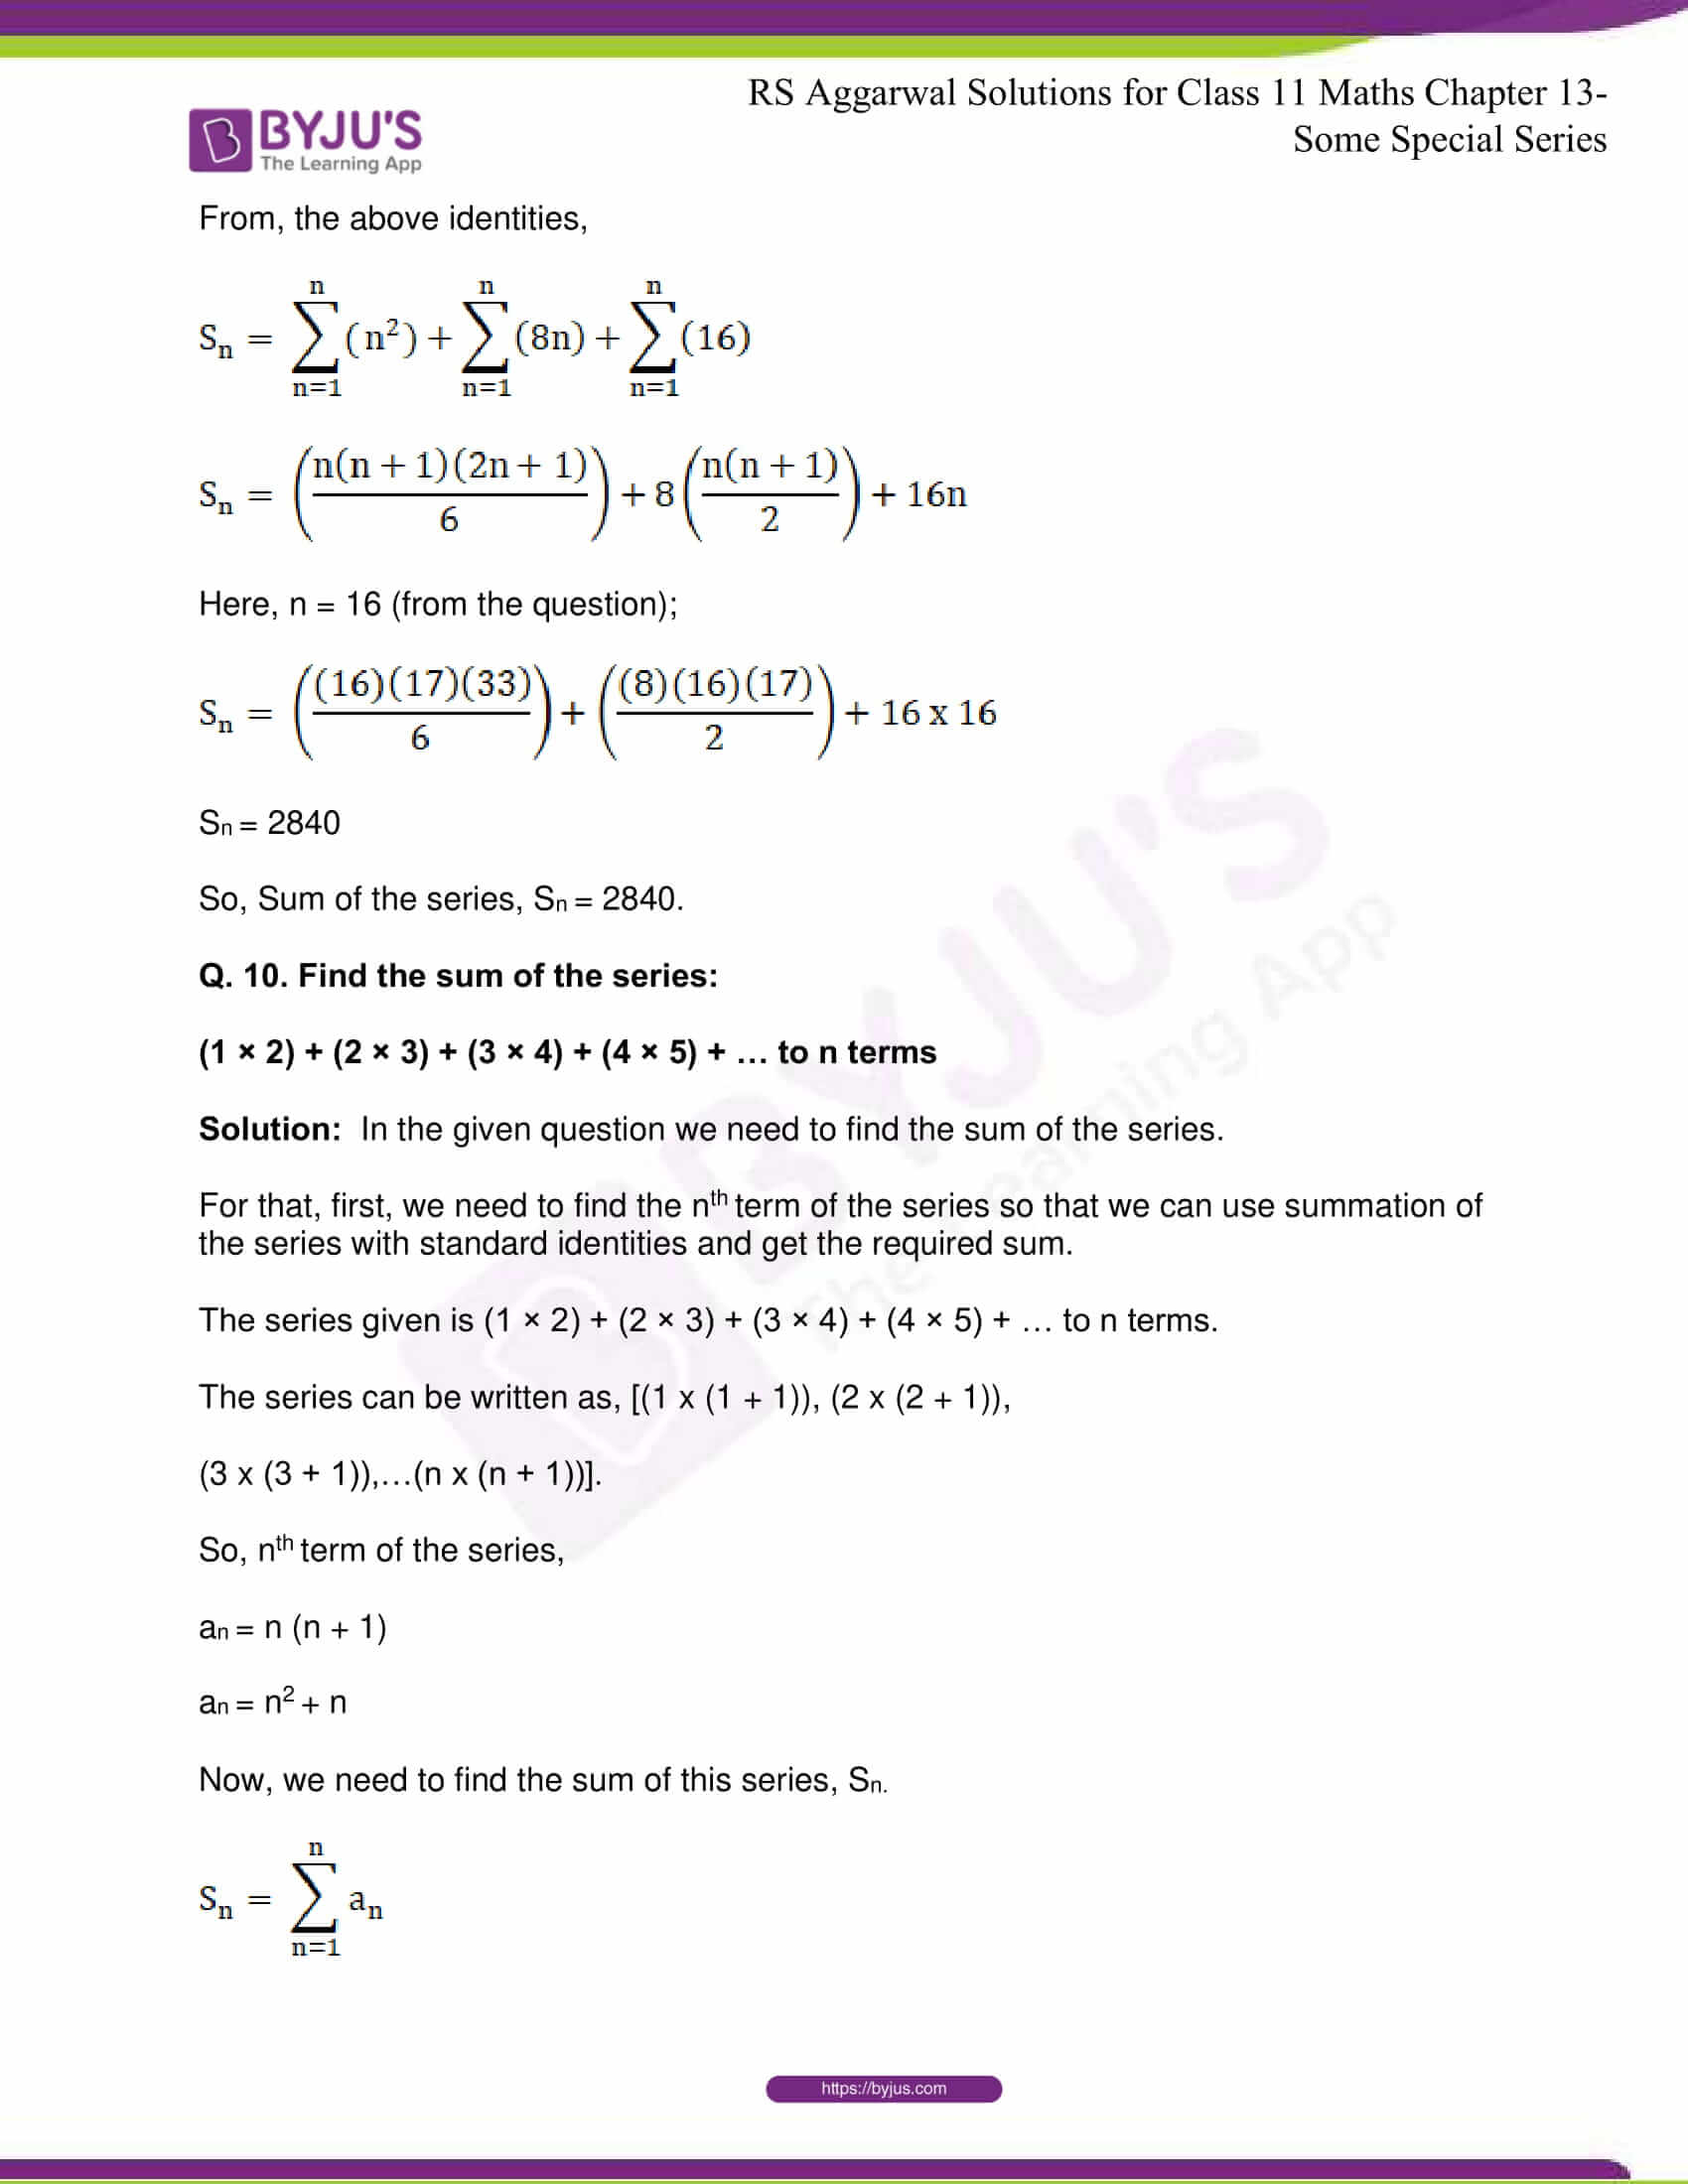 rsaggarwal solutions class 11 maths chapter 13 17